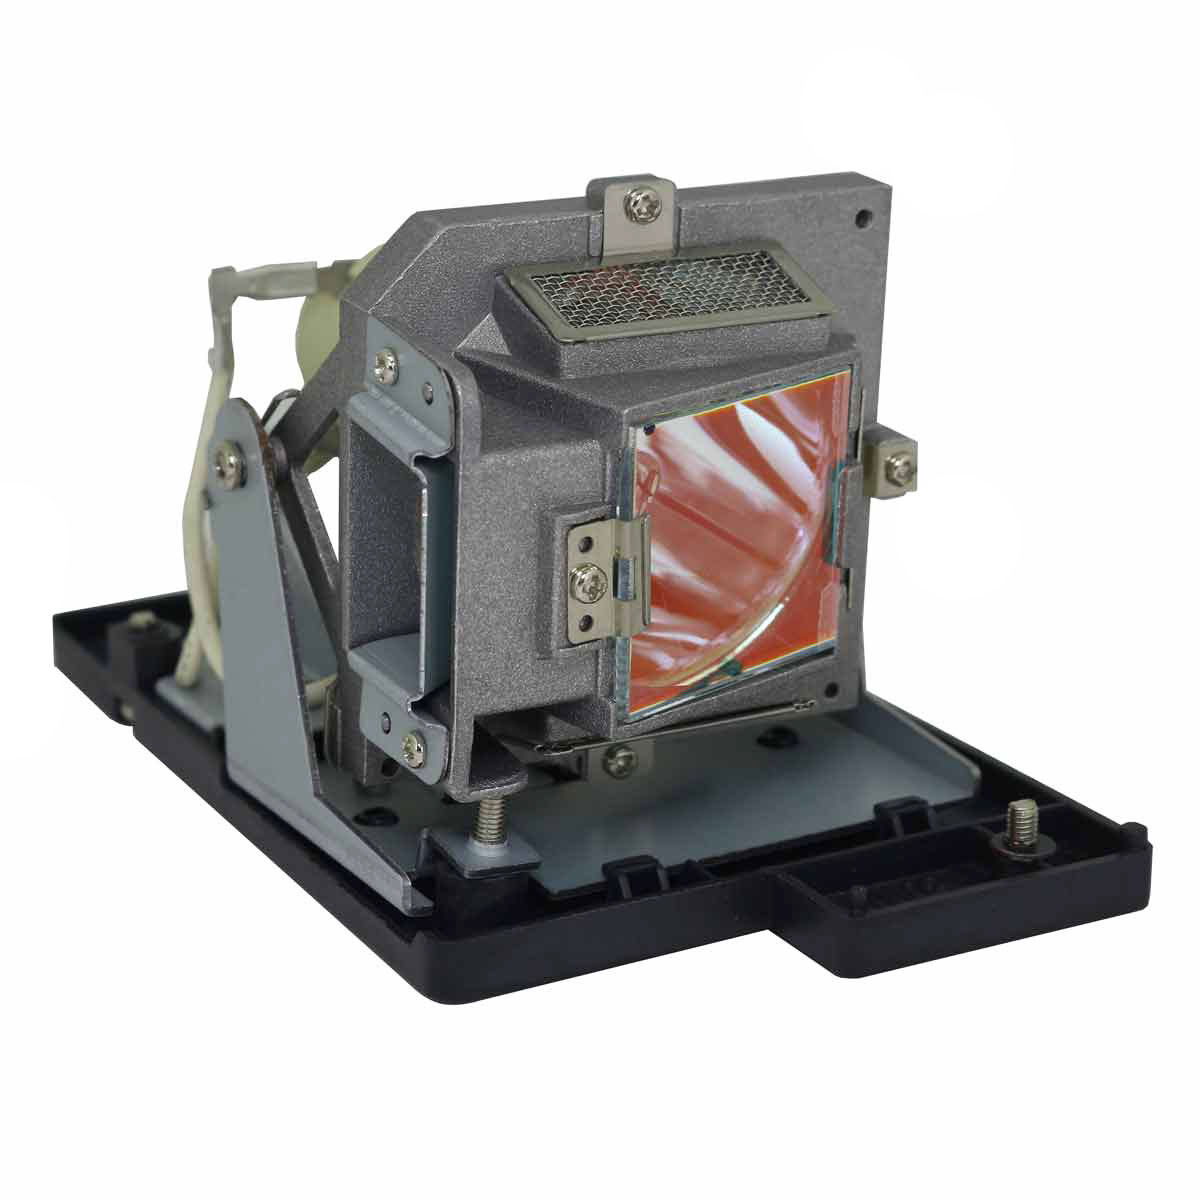 Original Philips Projector Lamp Replacement with Housing for Optoma BL-FP180D - image 4 de 5